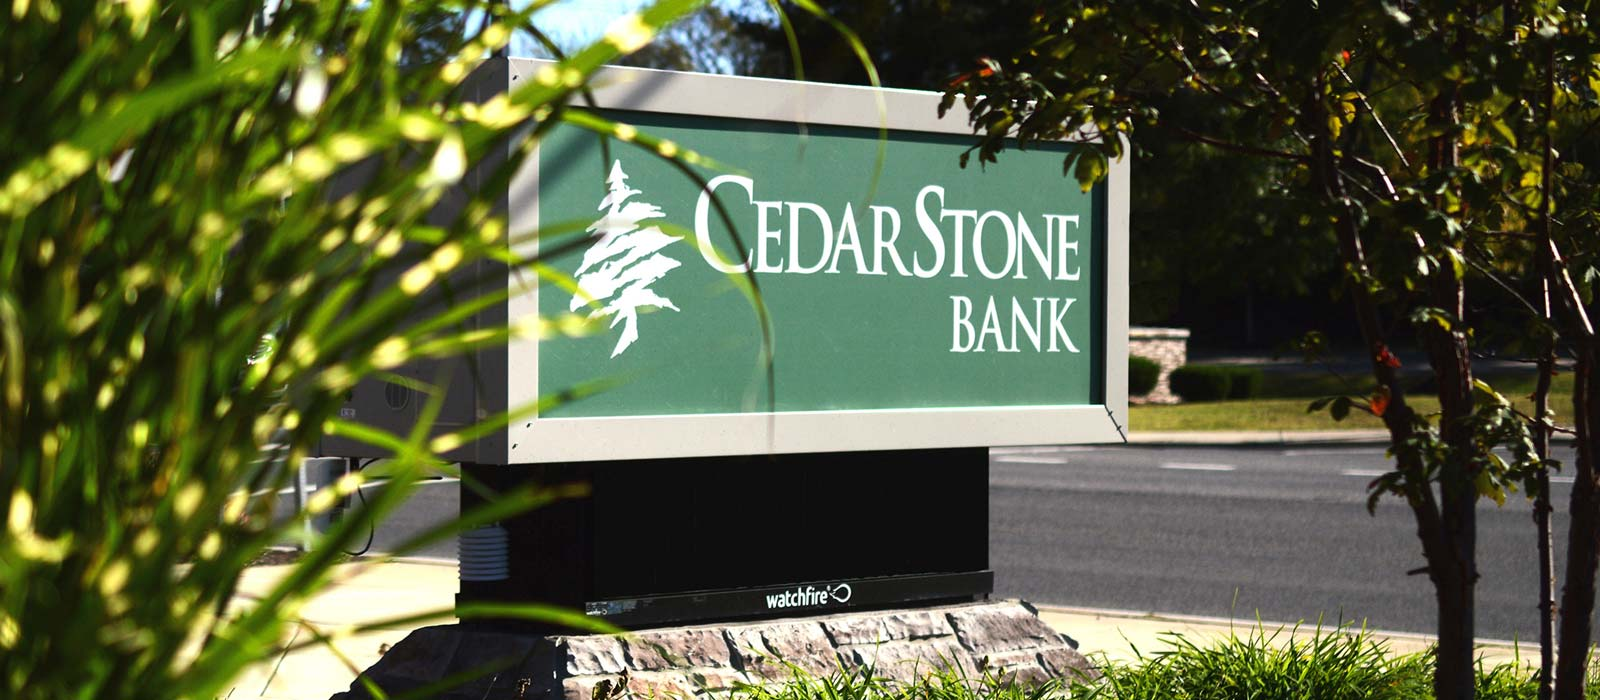 Slide Cedarstone Bank Business1